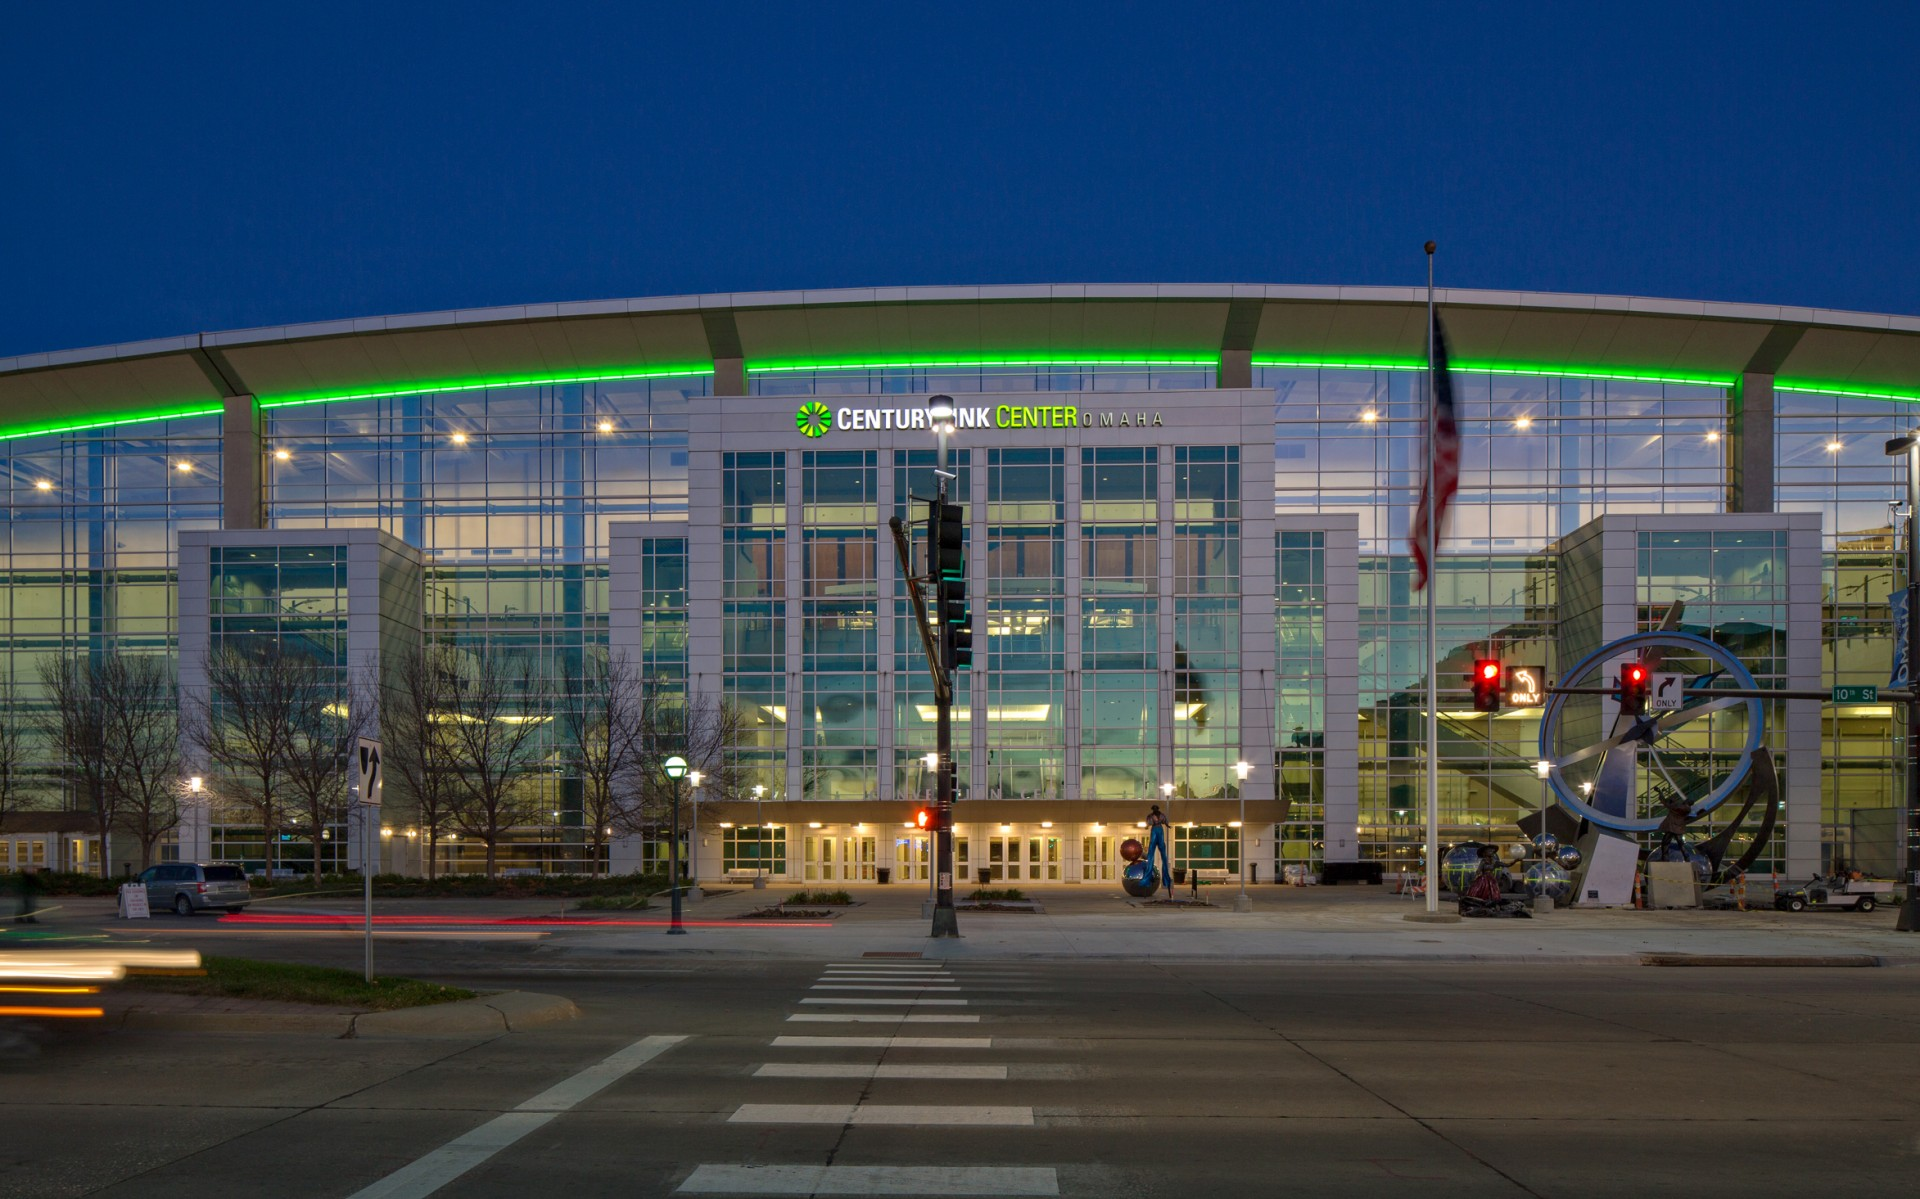 The CenturyLink Center in downtown Omaha is a modern, multi-functional entertainment complex featuring a 14,000-seat arena and a 194,000-ft² exhibition hall.